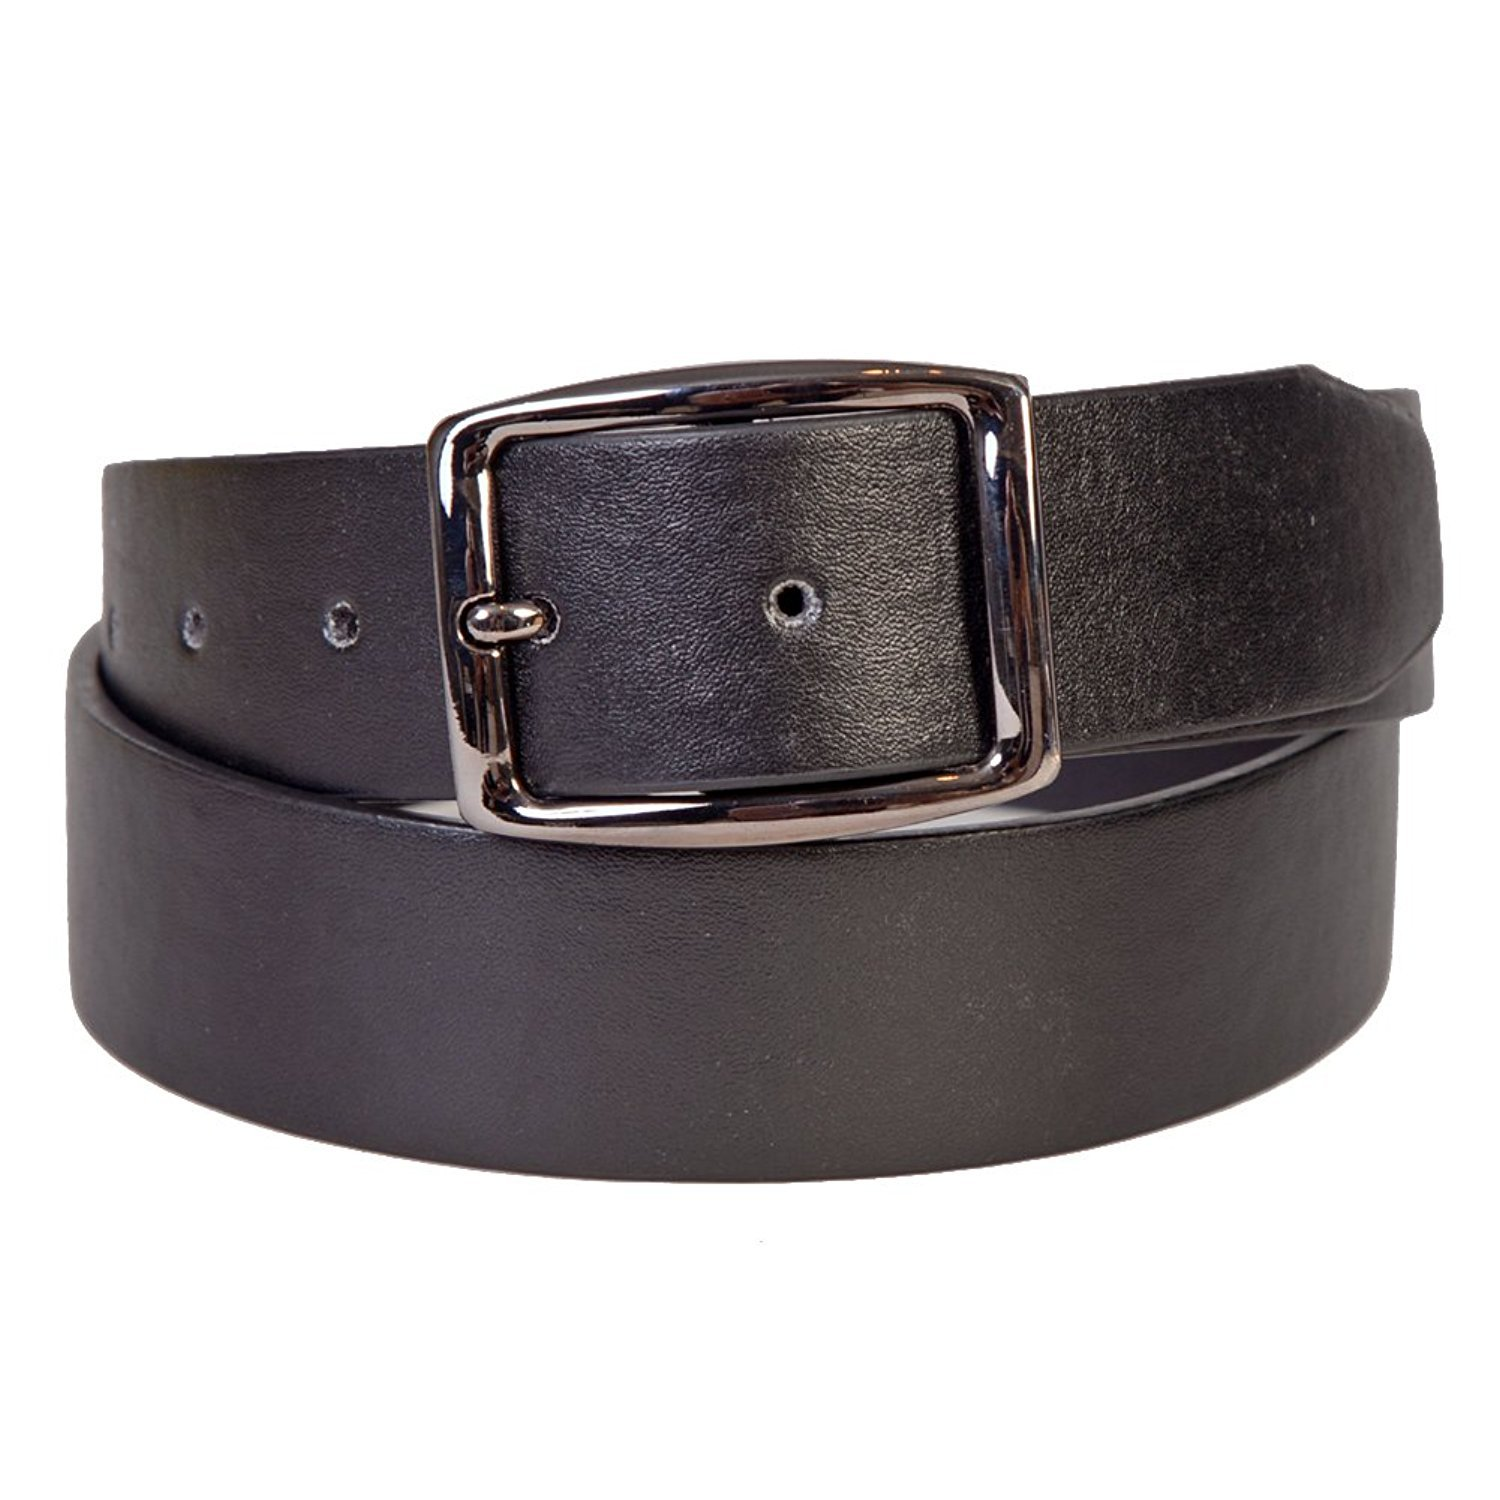 Sunny Belt Boys Classic Faux Leather 1 1/2 Wide Black Belt